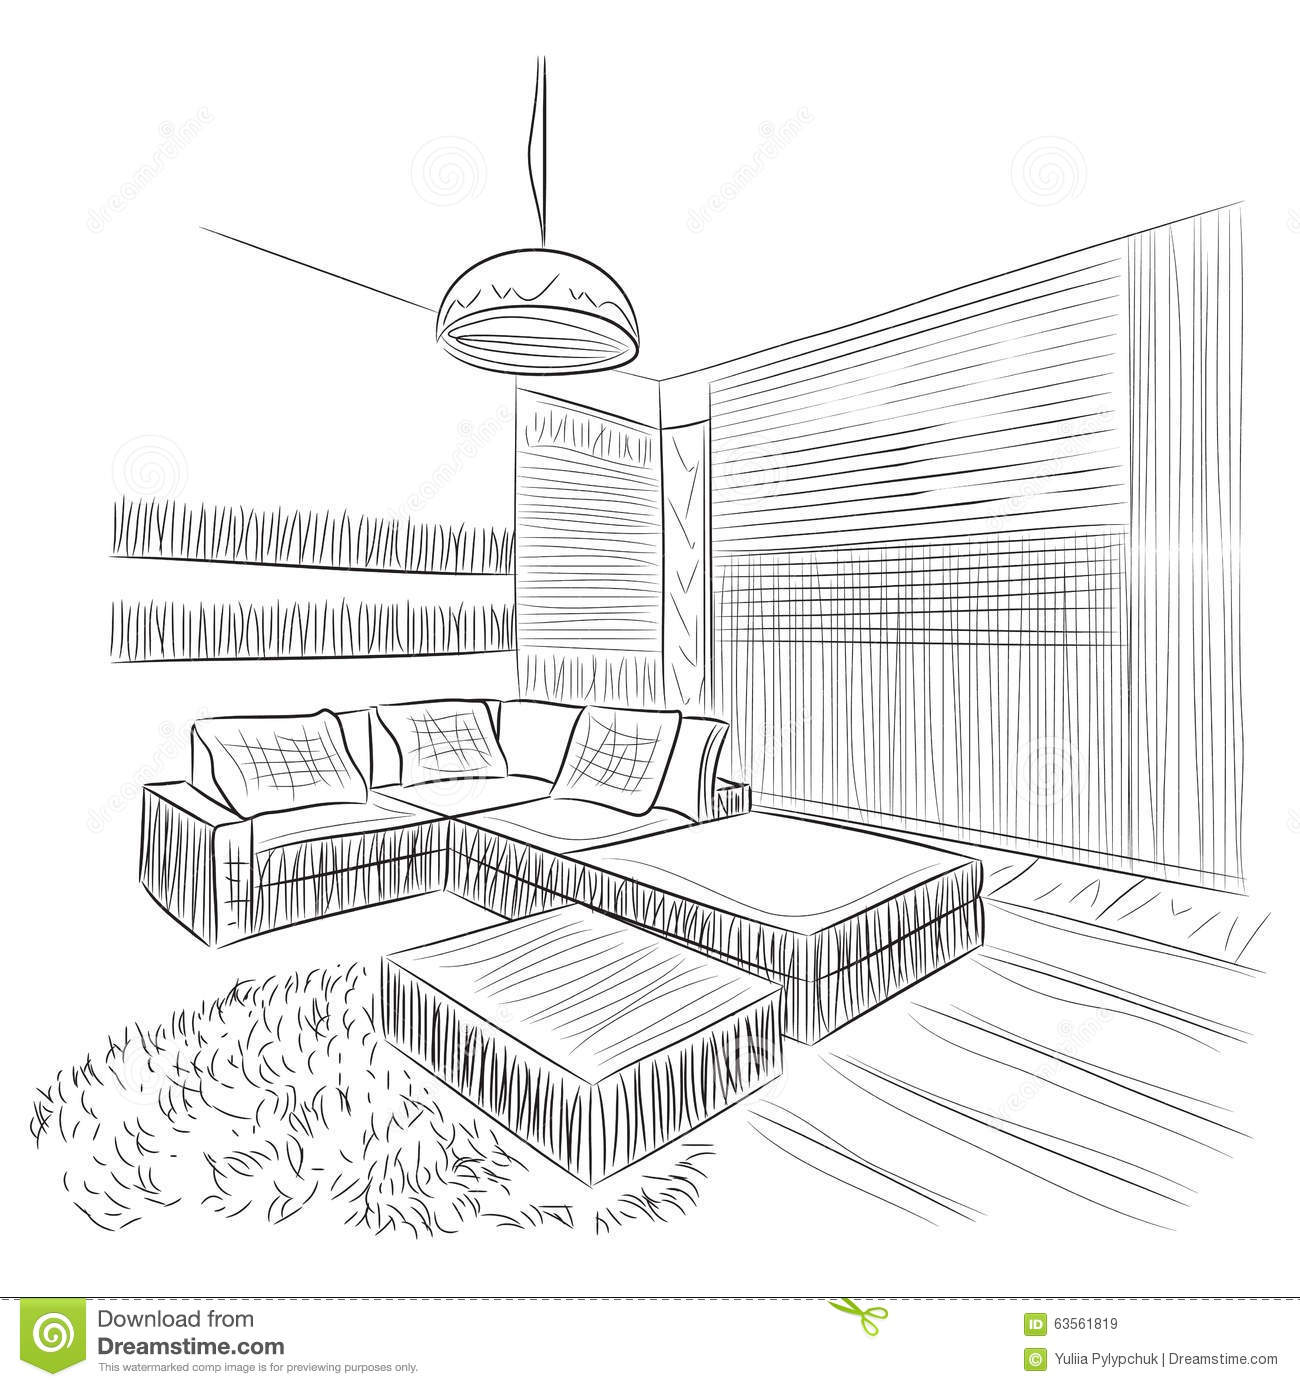 94 living room interior design sketch living room Room sketches interior design